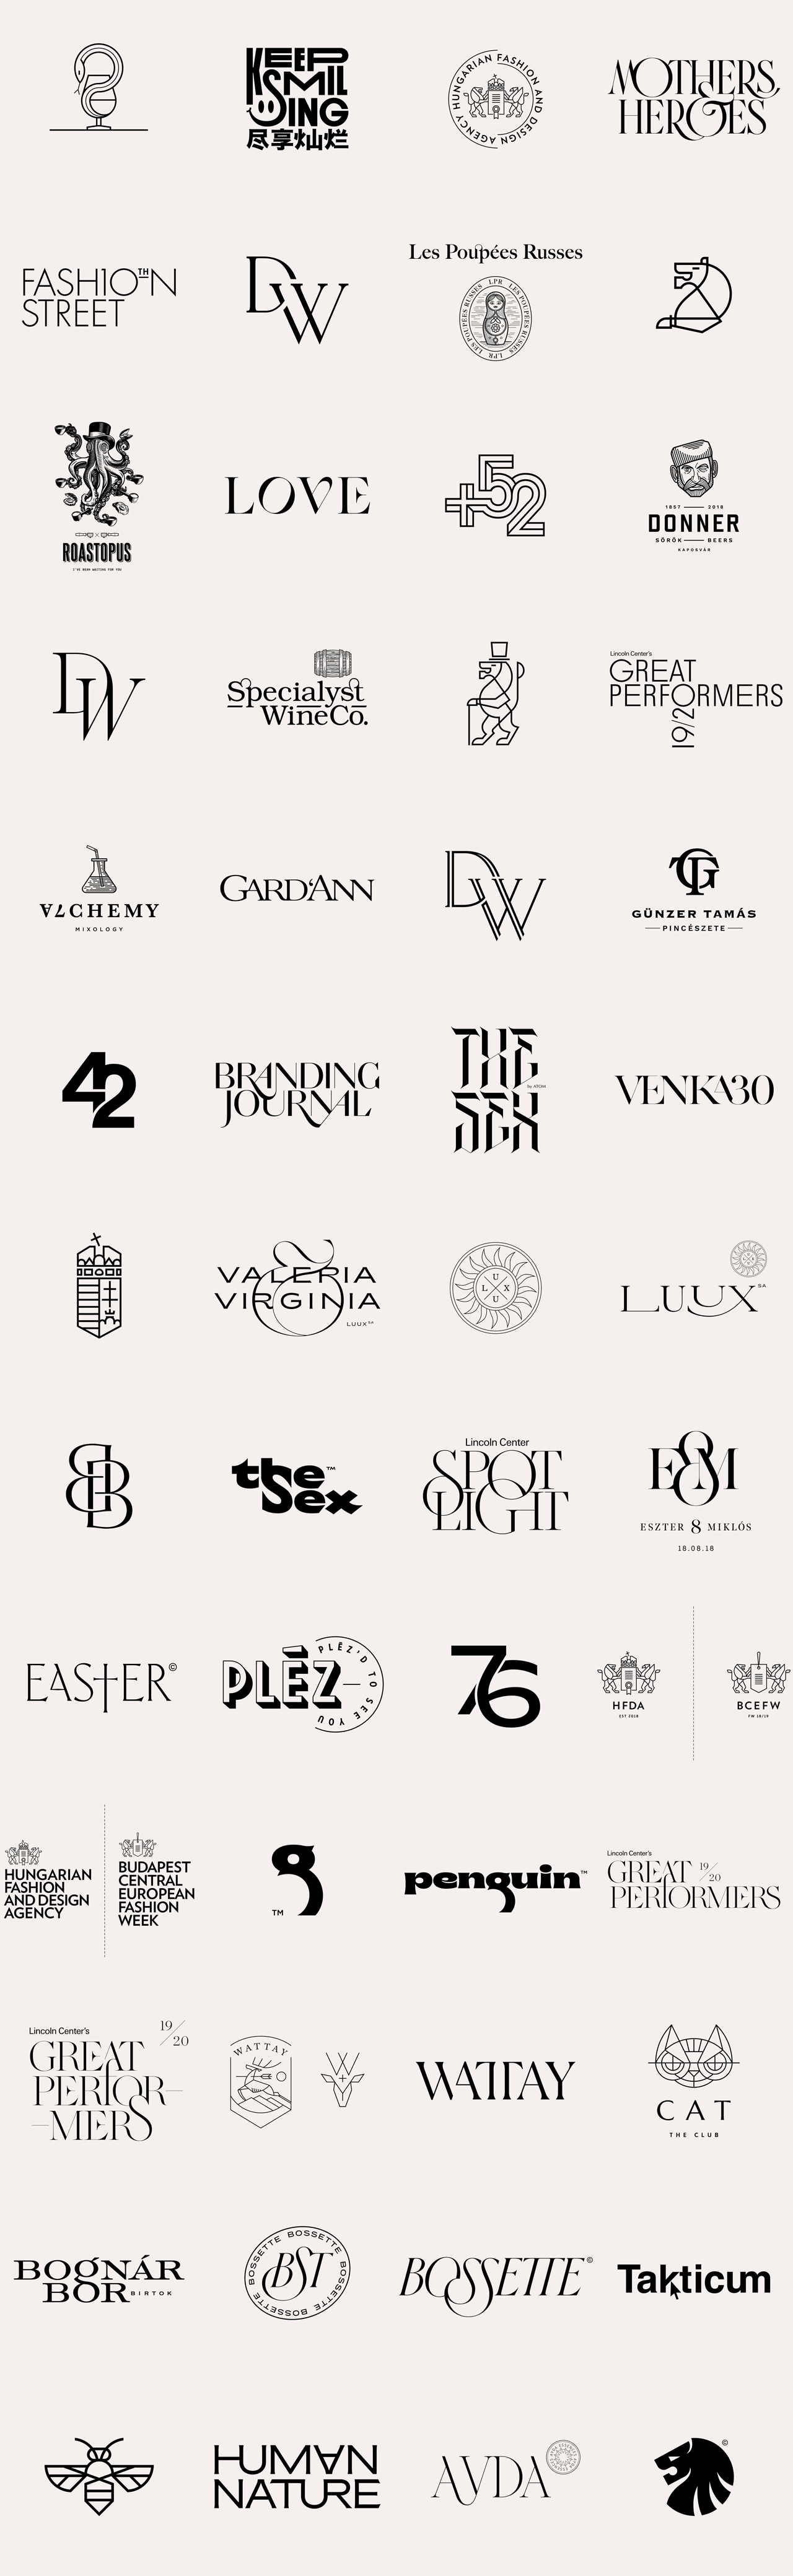 52 logos by graphic designer Miklós Kiss.